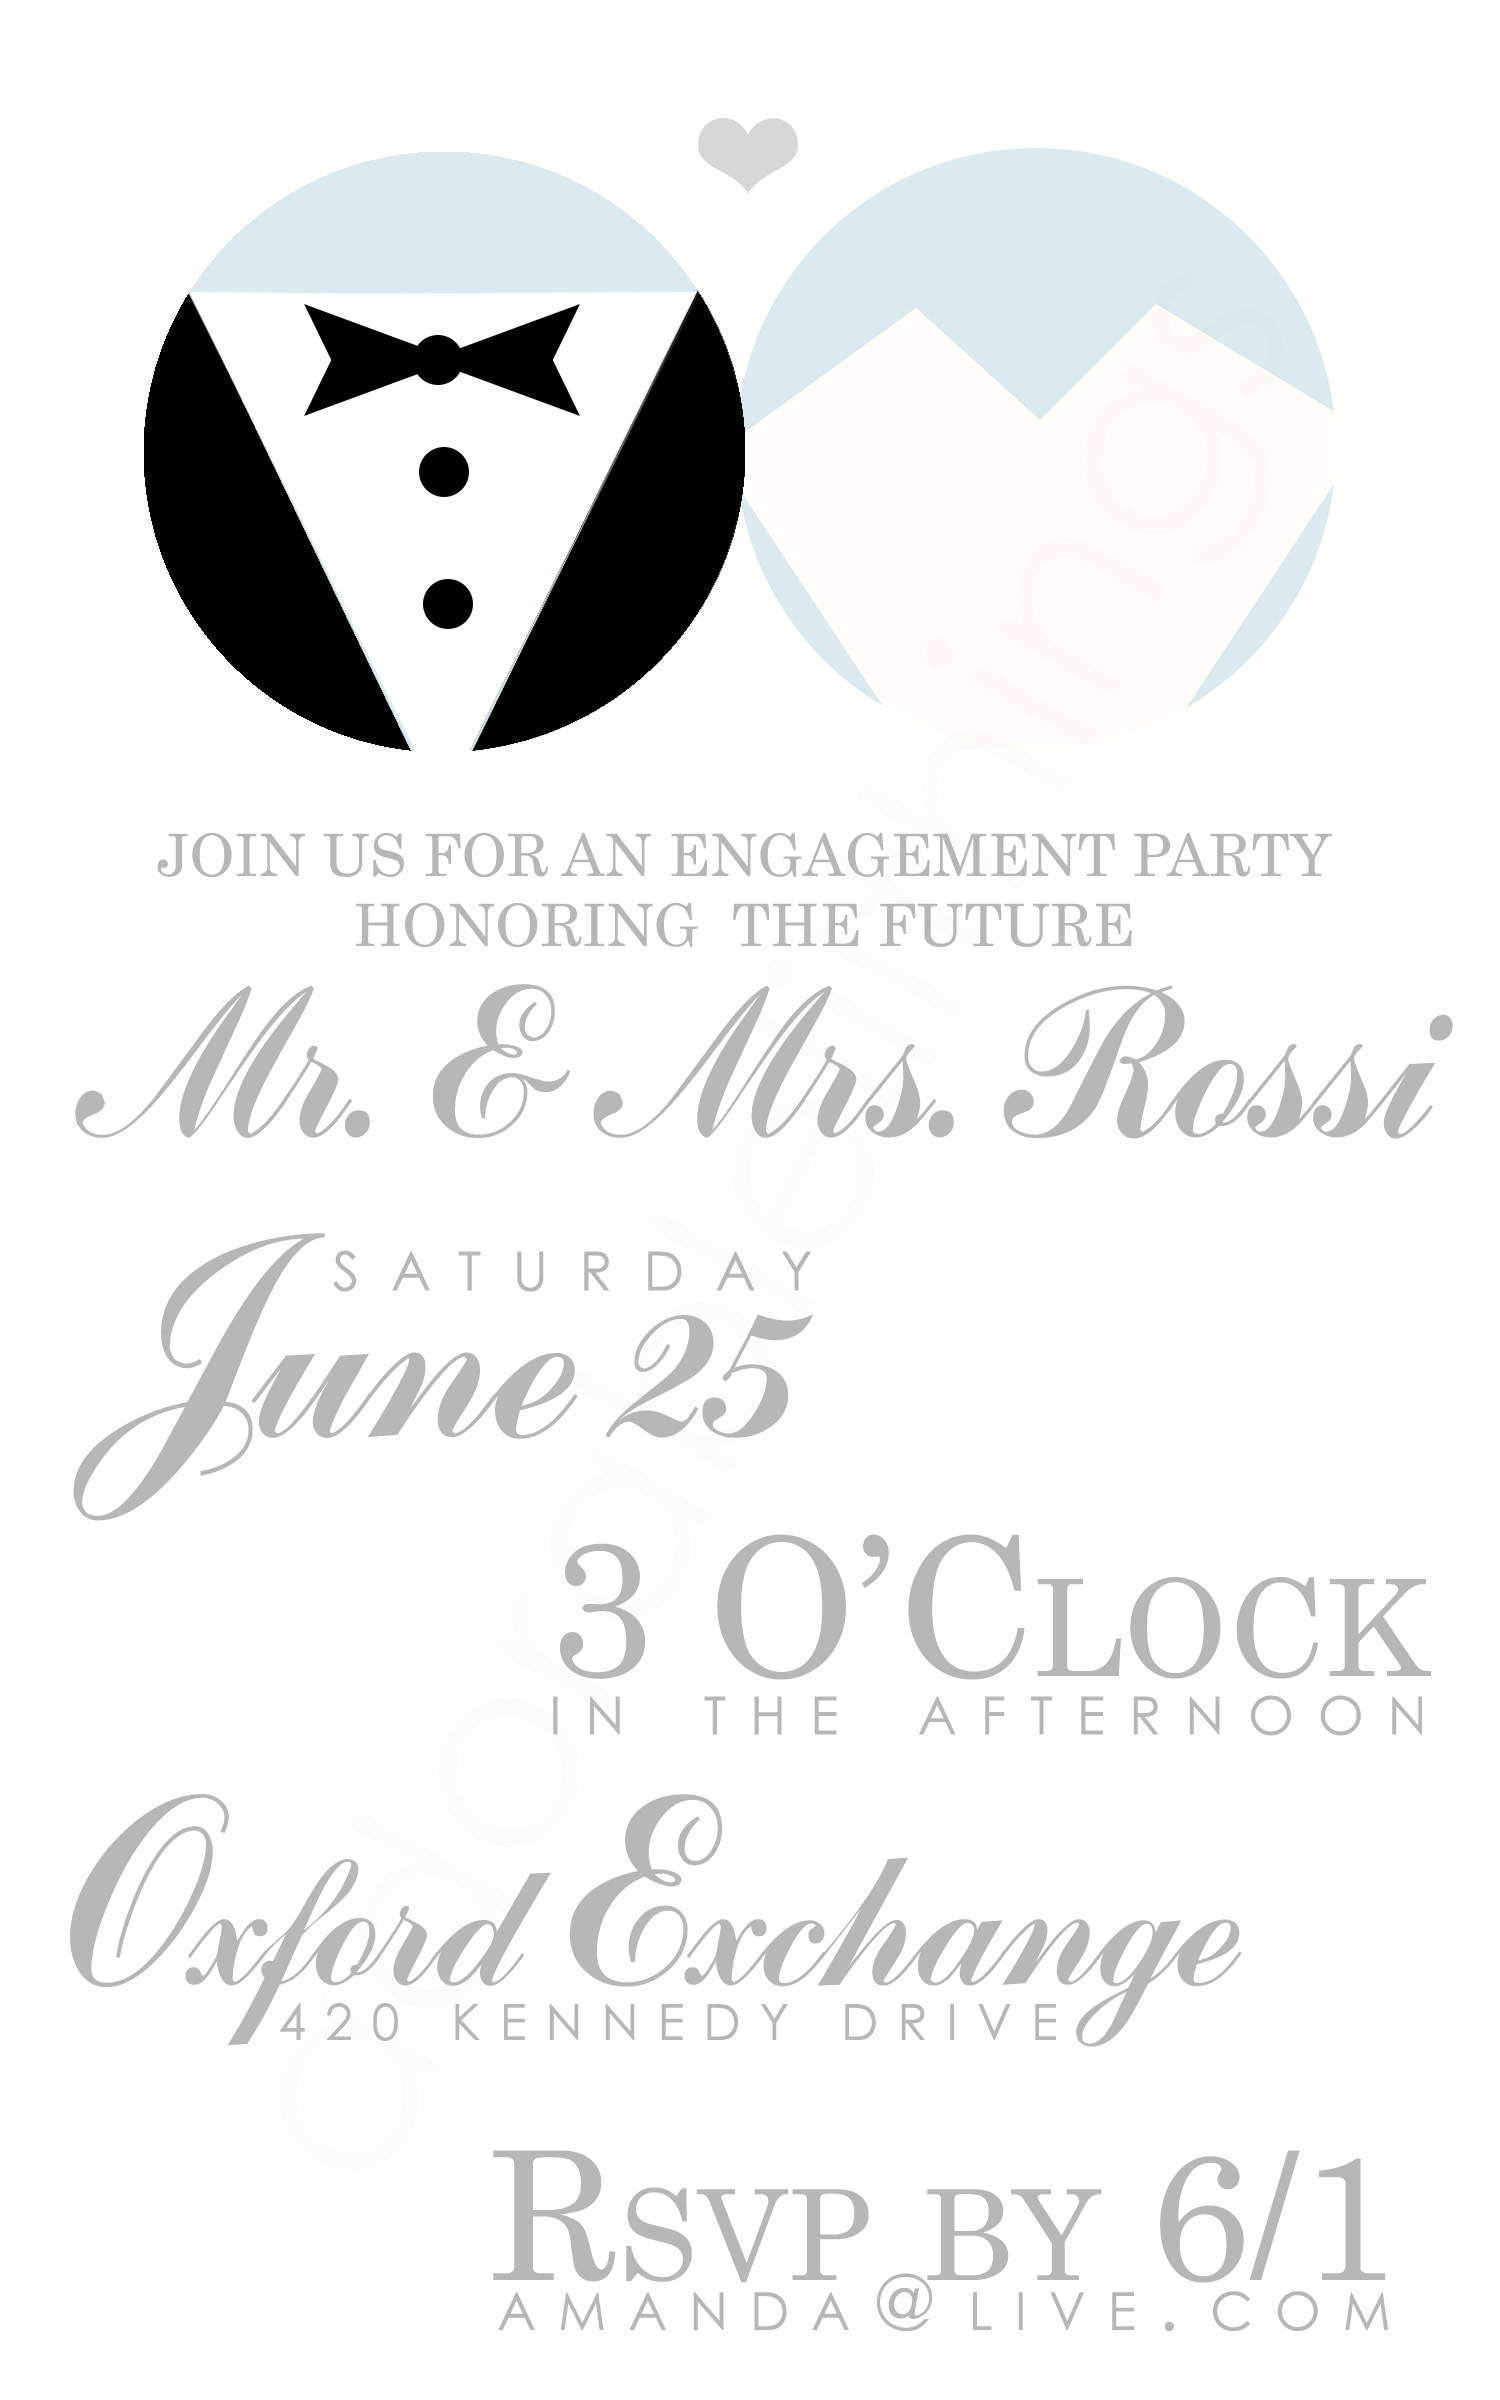 Bride, Groom Engagement Party Invite ~ Invitation Templates on Creative Market